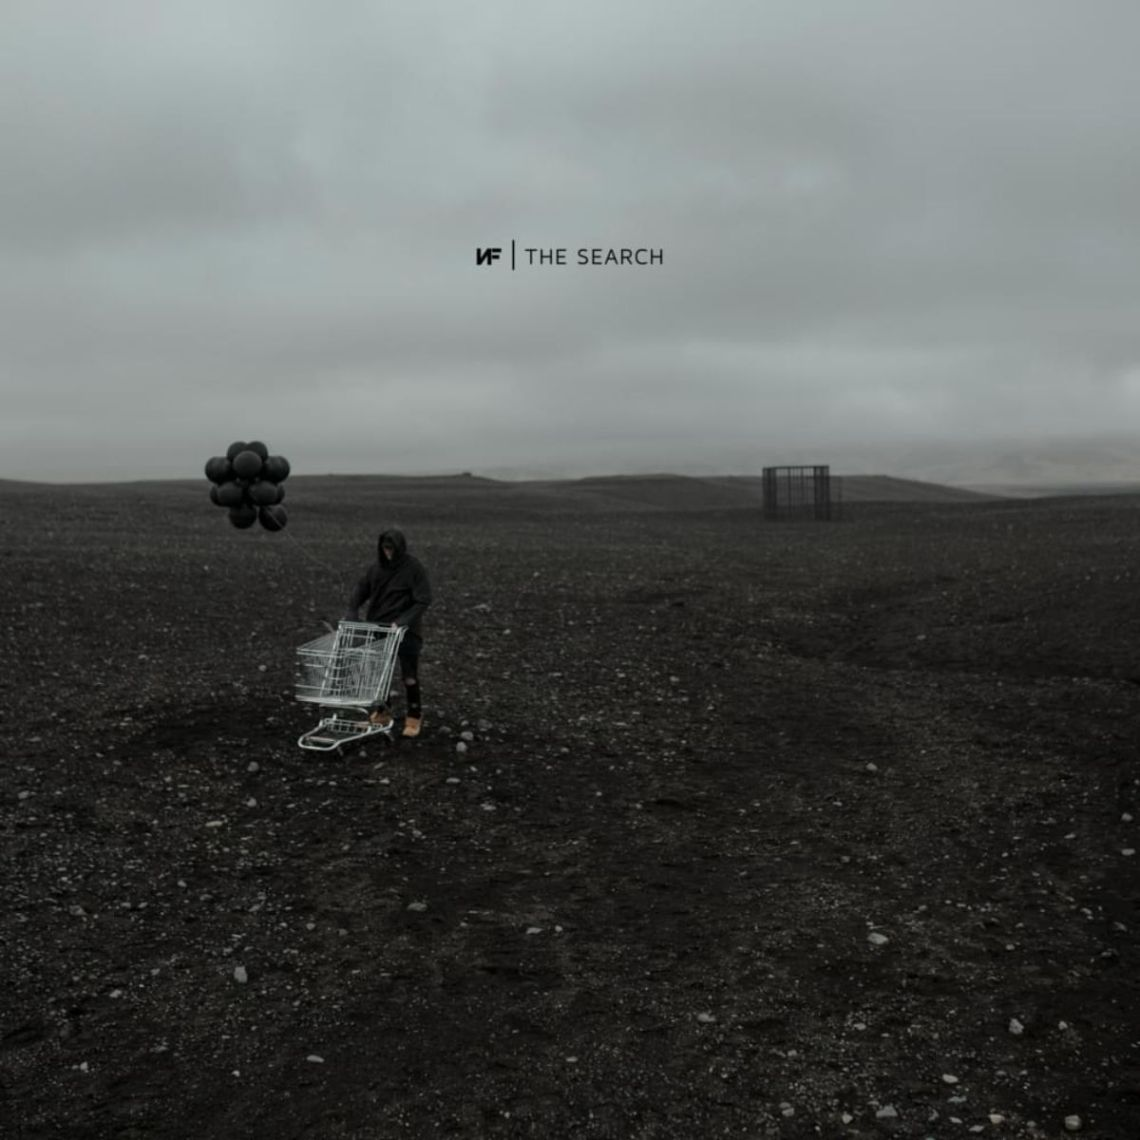 NF - The Search